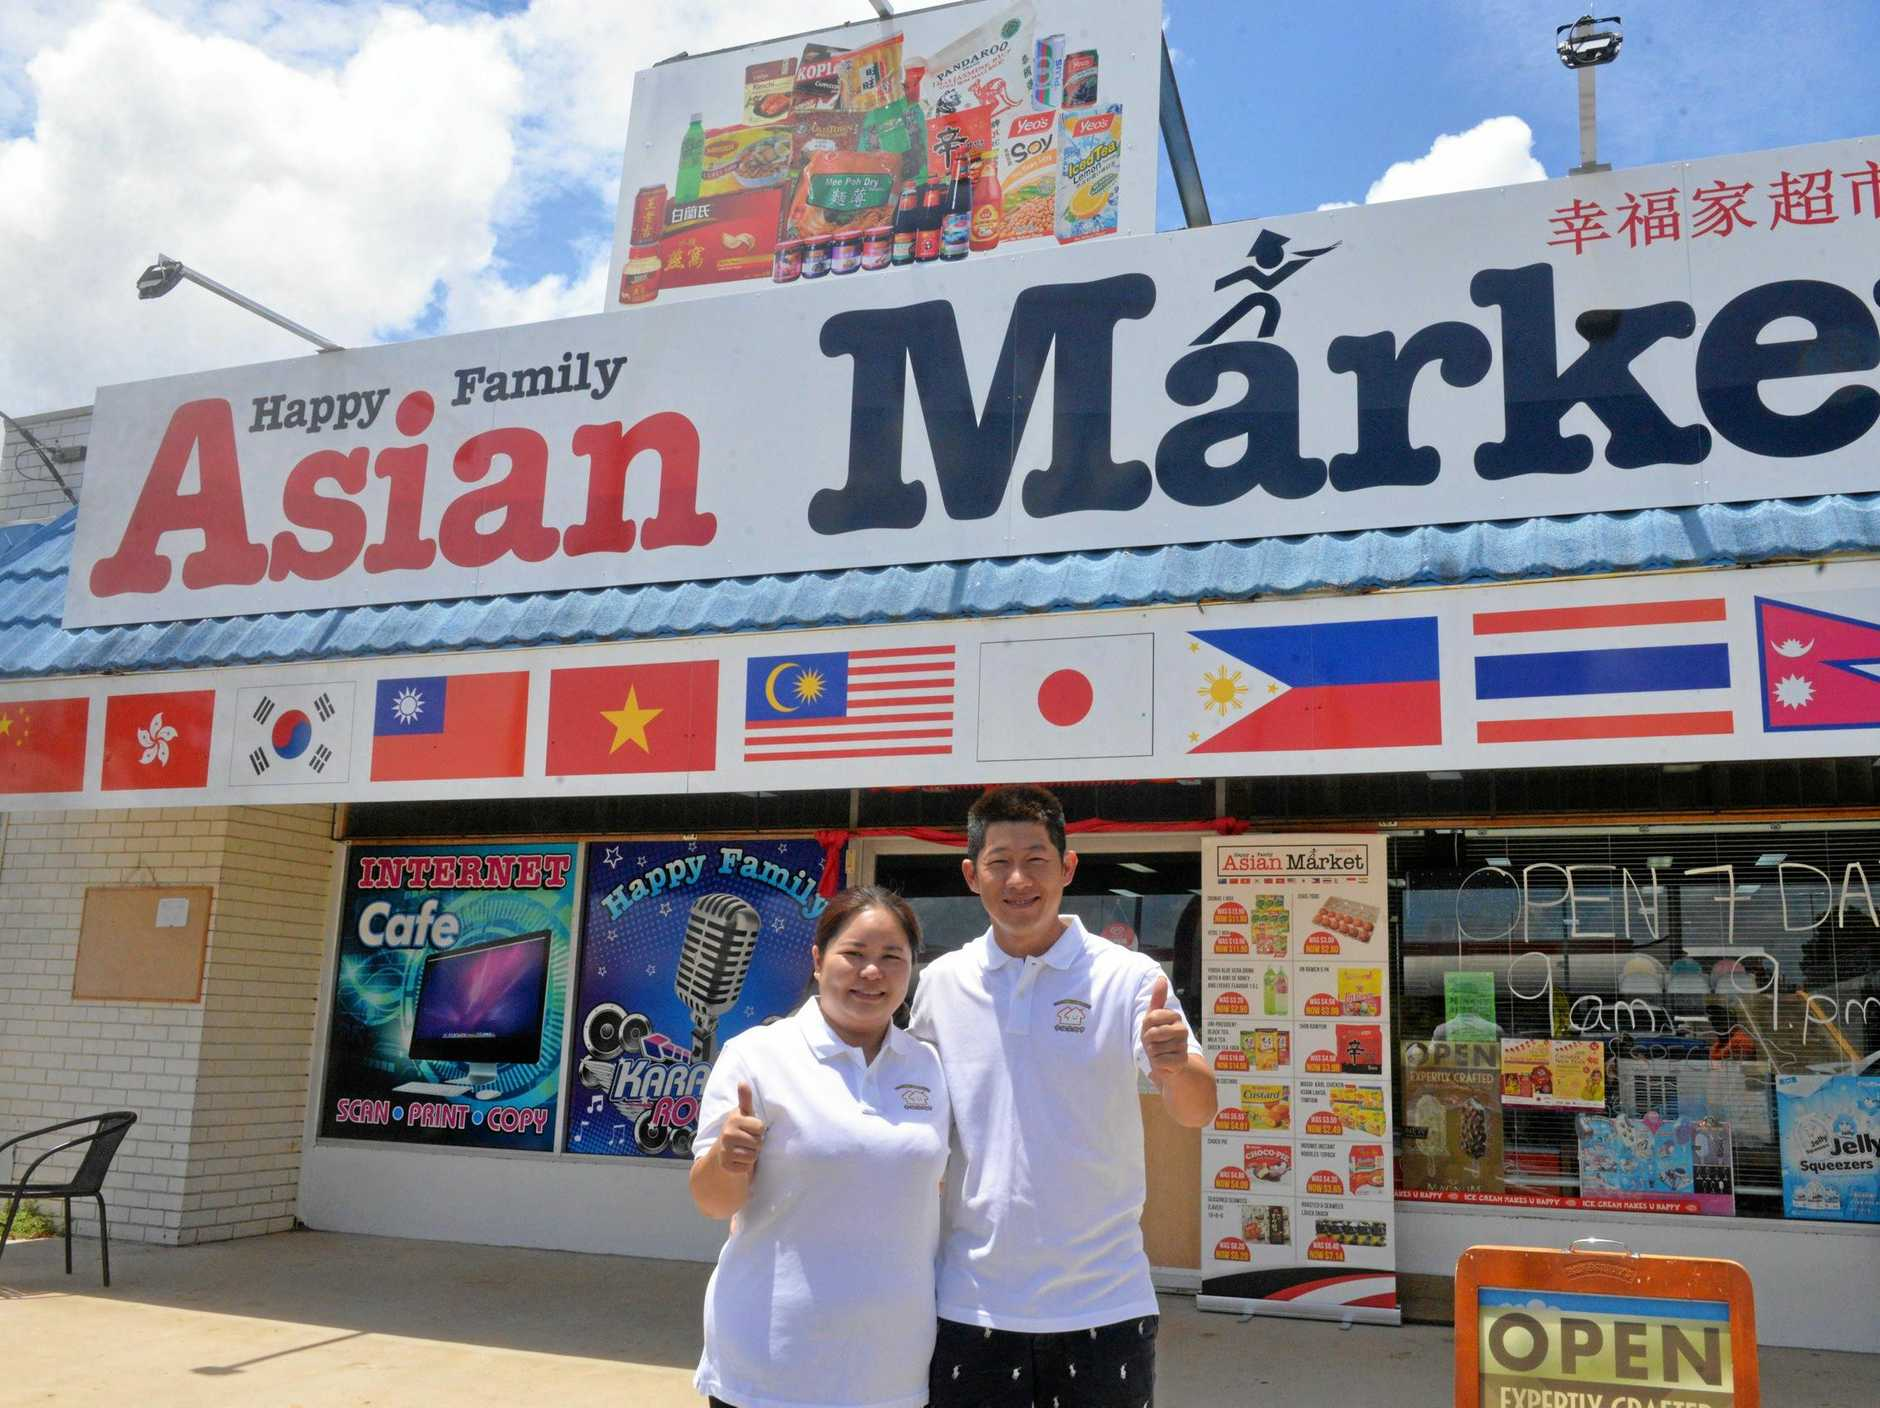 OPEN FOR BUSINESS: Happy Family Asian Market owners Chantelle Wong and Max Lu outside their store.